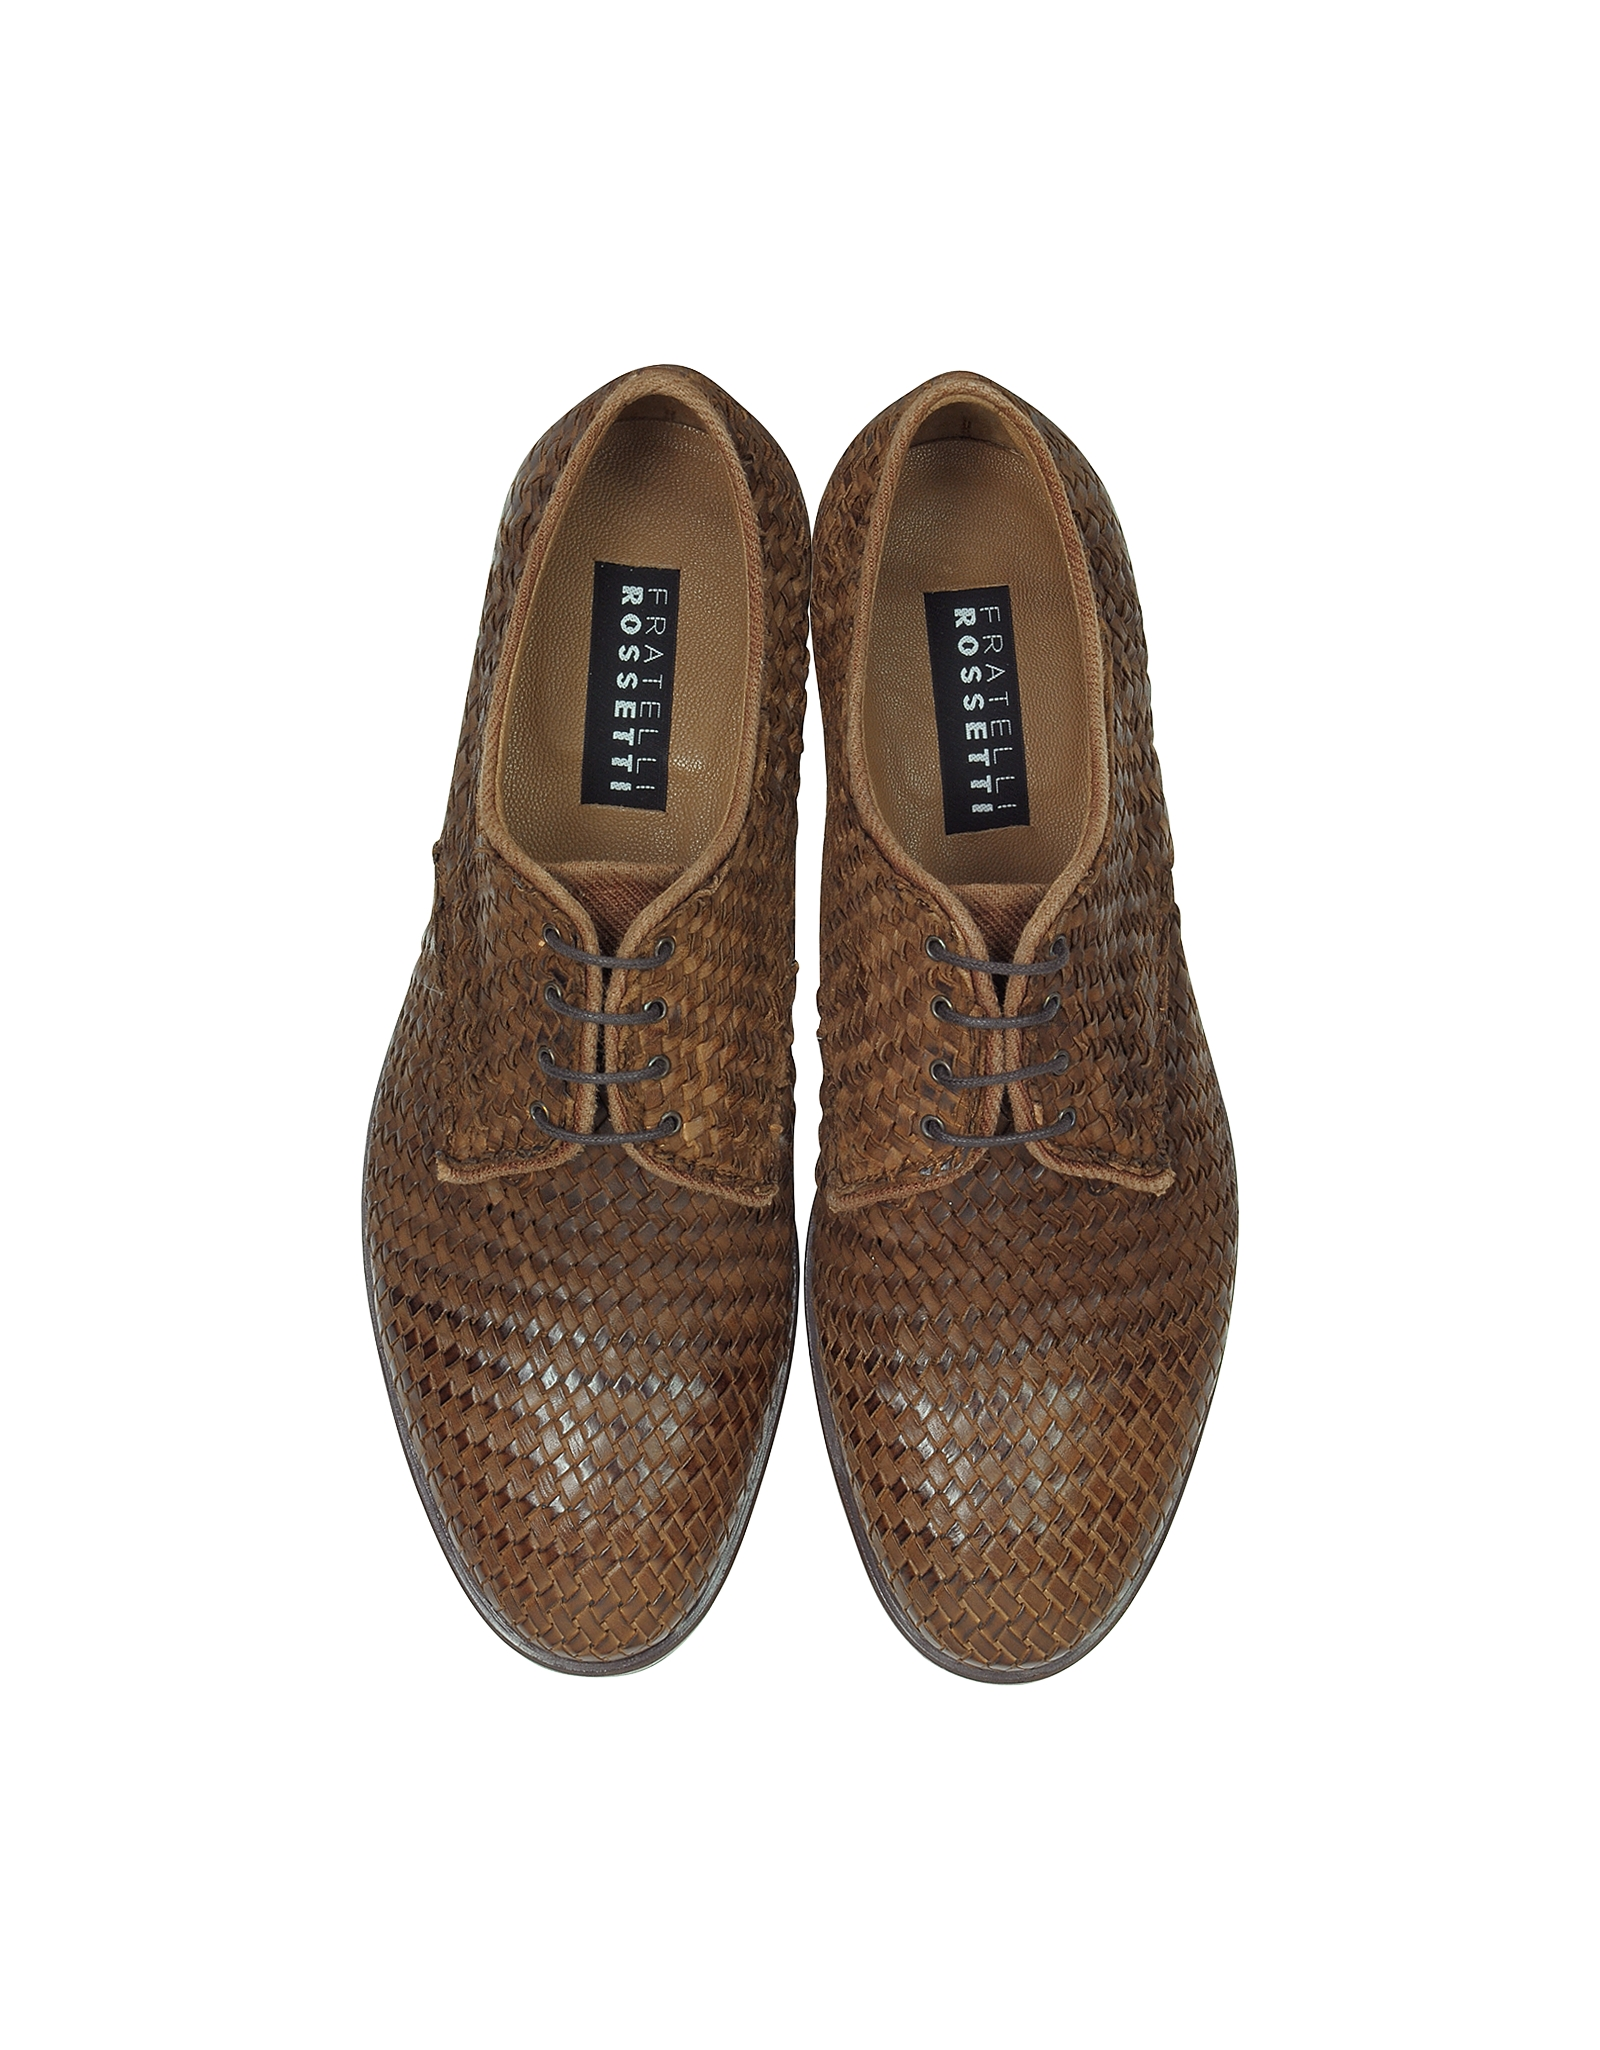 info for 91b50 4fca2 Fratelli Rossetti Derby Brown Woven Leather Shoes for Men - Lyst